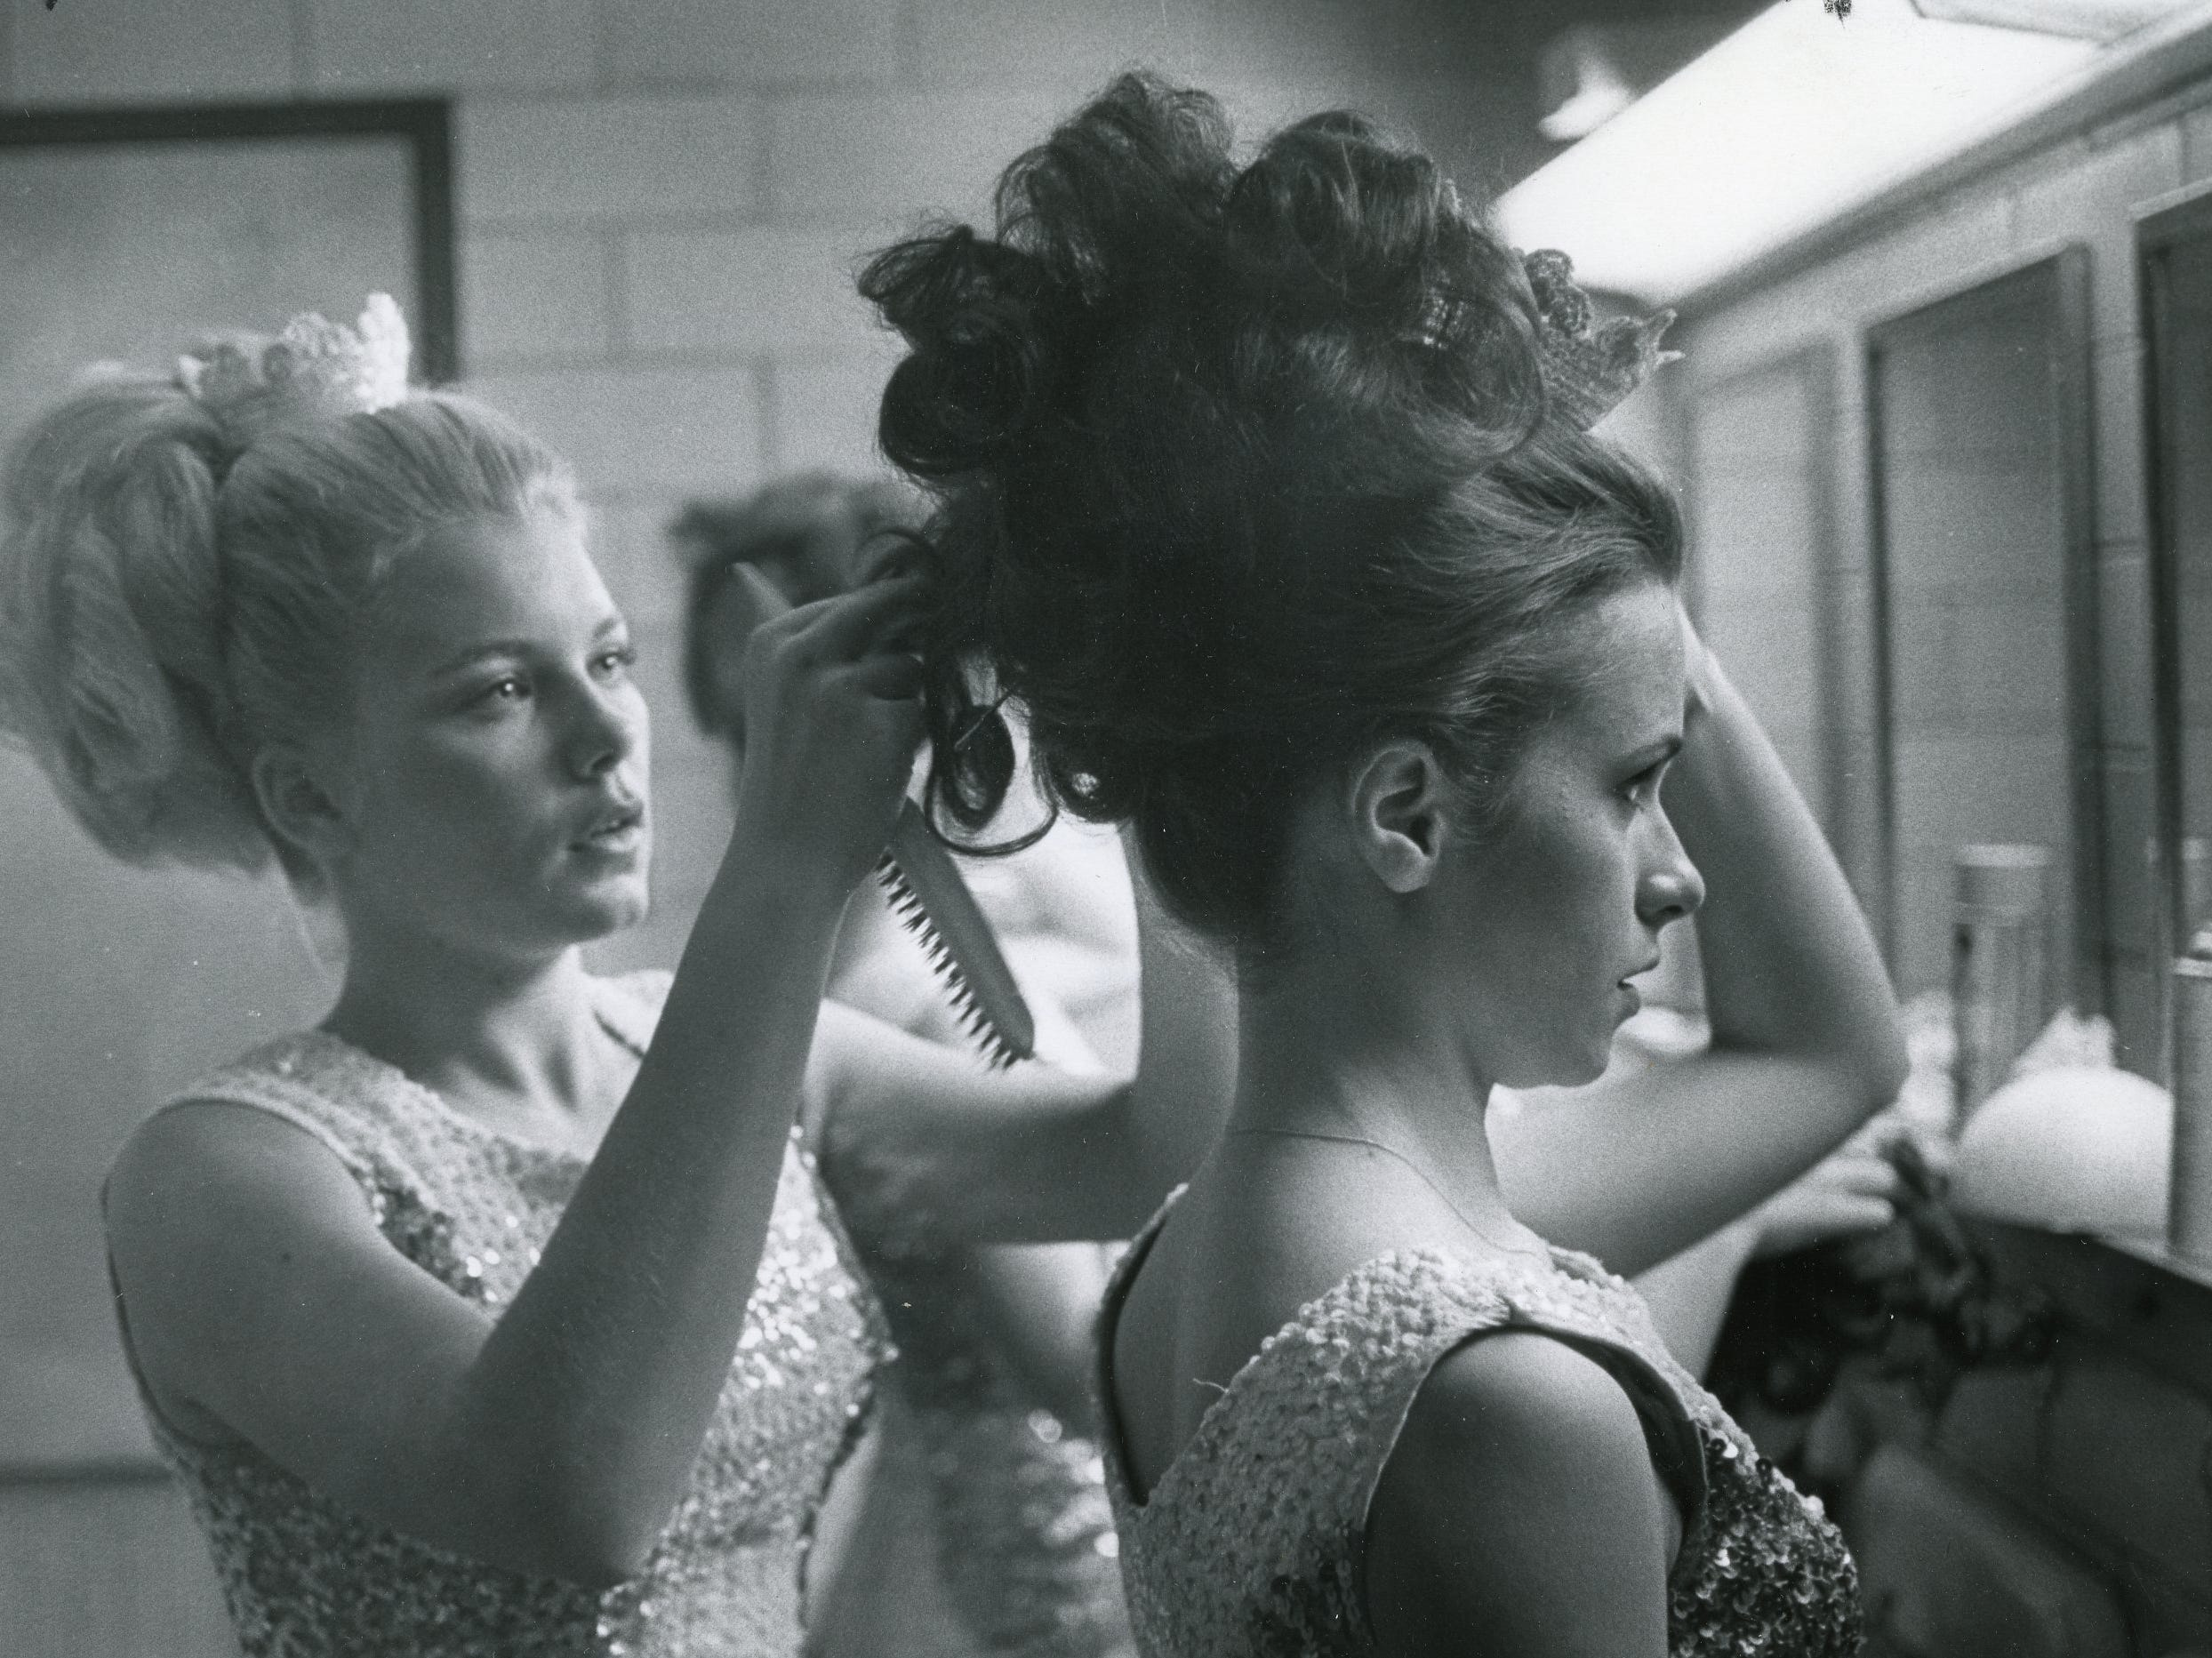 UT majorettes Suzie Smith and Suzanne Minchey get ready to perform, January, 1973.